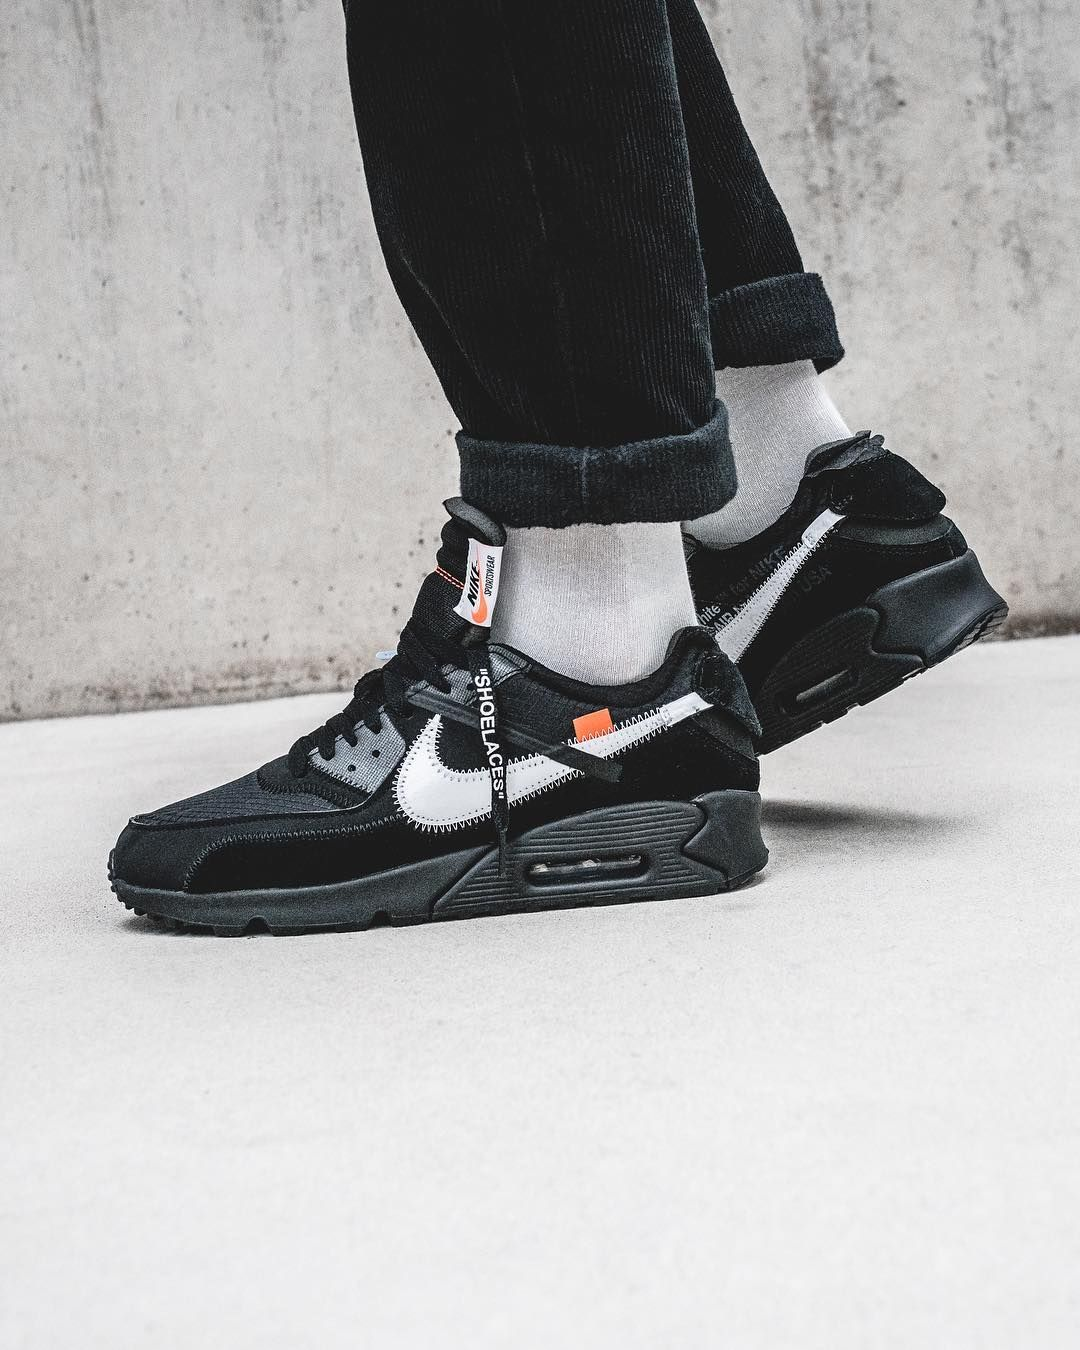 Nike X Off White Air Max 90 Desert Ore And Black Sneakers Nike Air Max Nike Air Max 90 Black Nike Air Max White